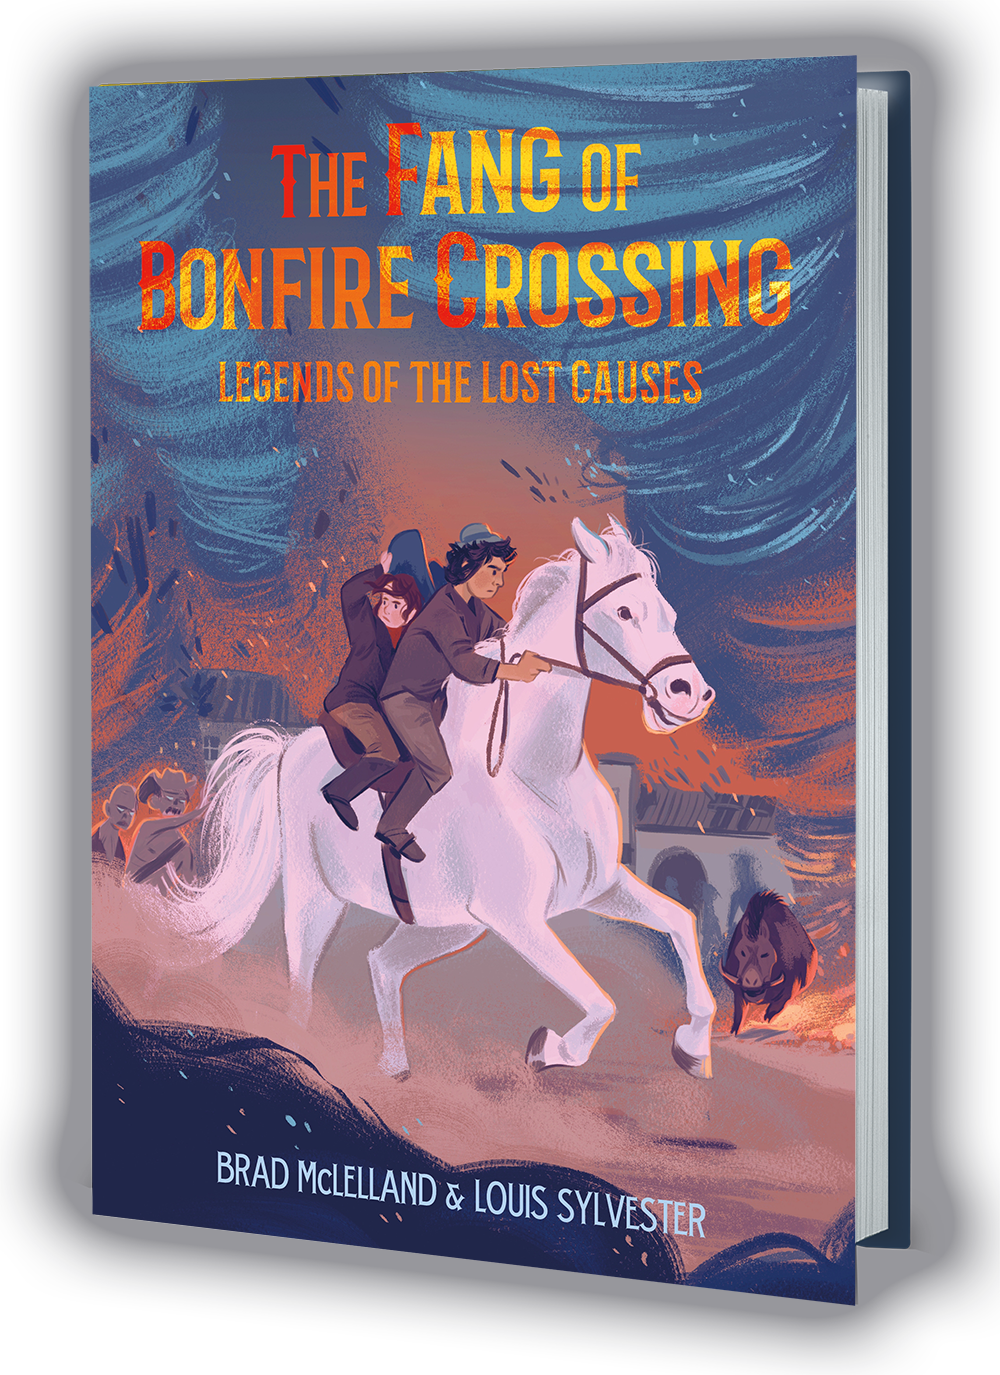 fang-of-bonfire-crossing-3d-book